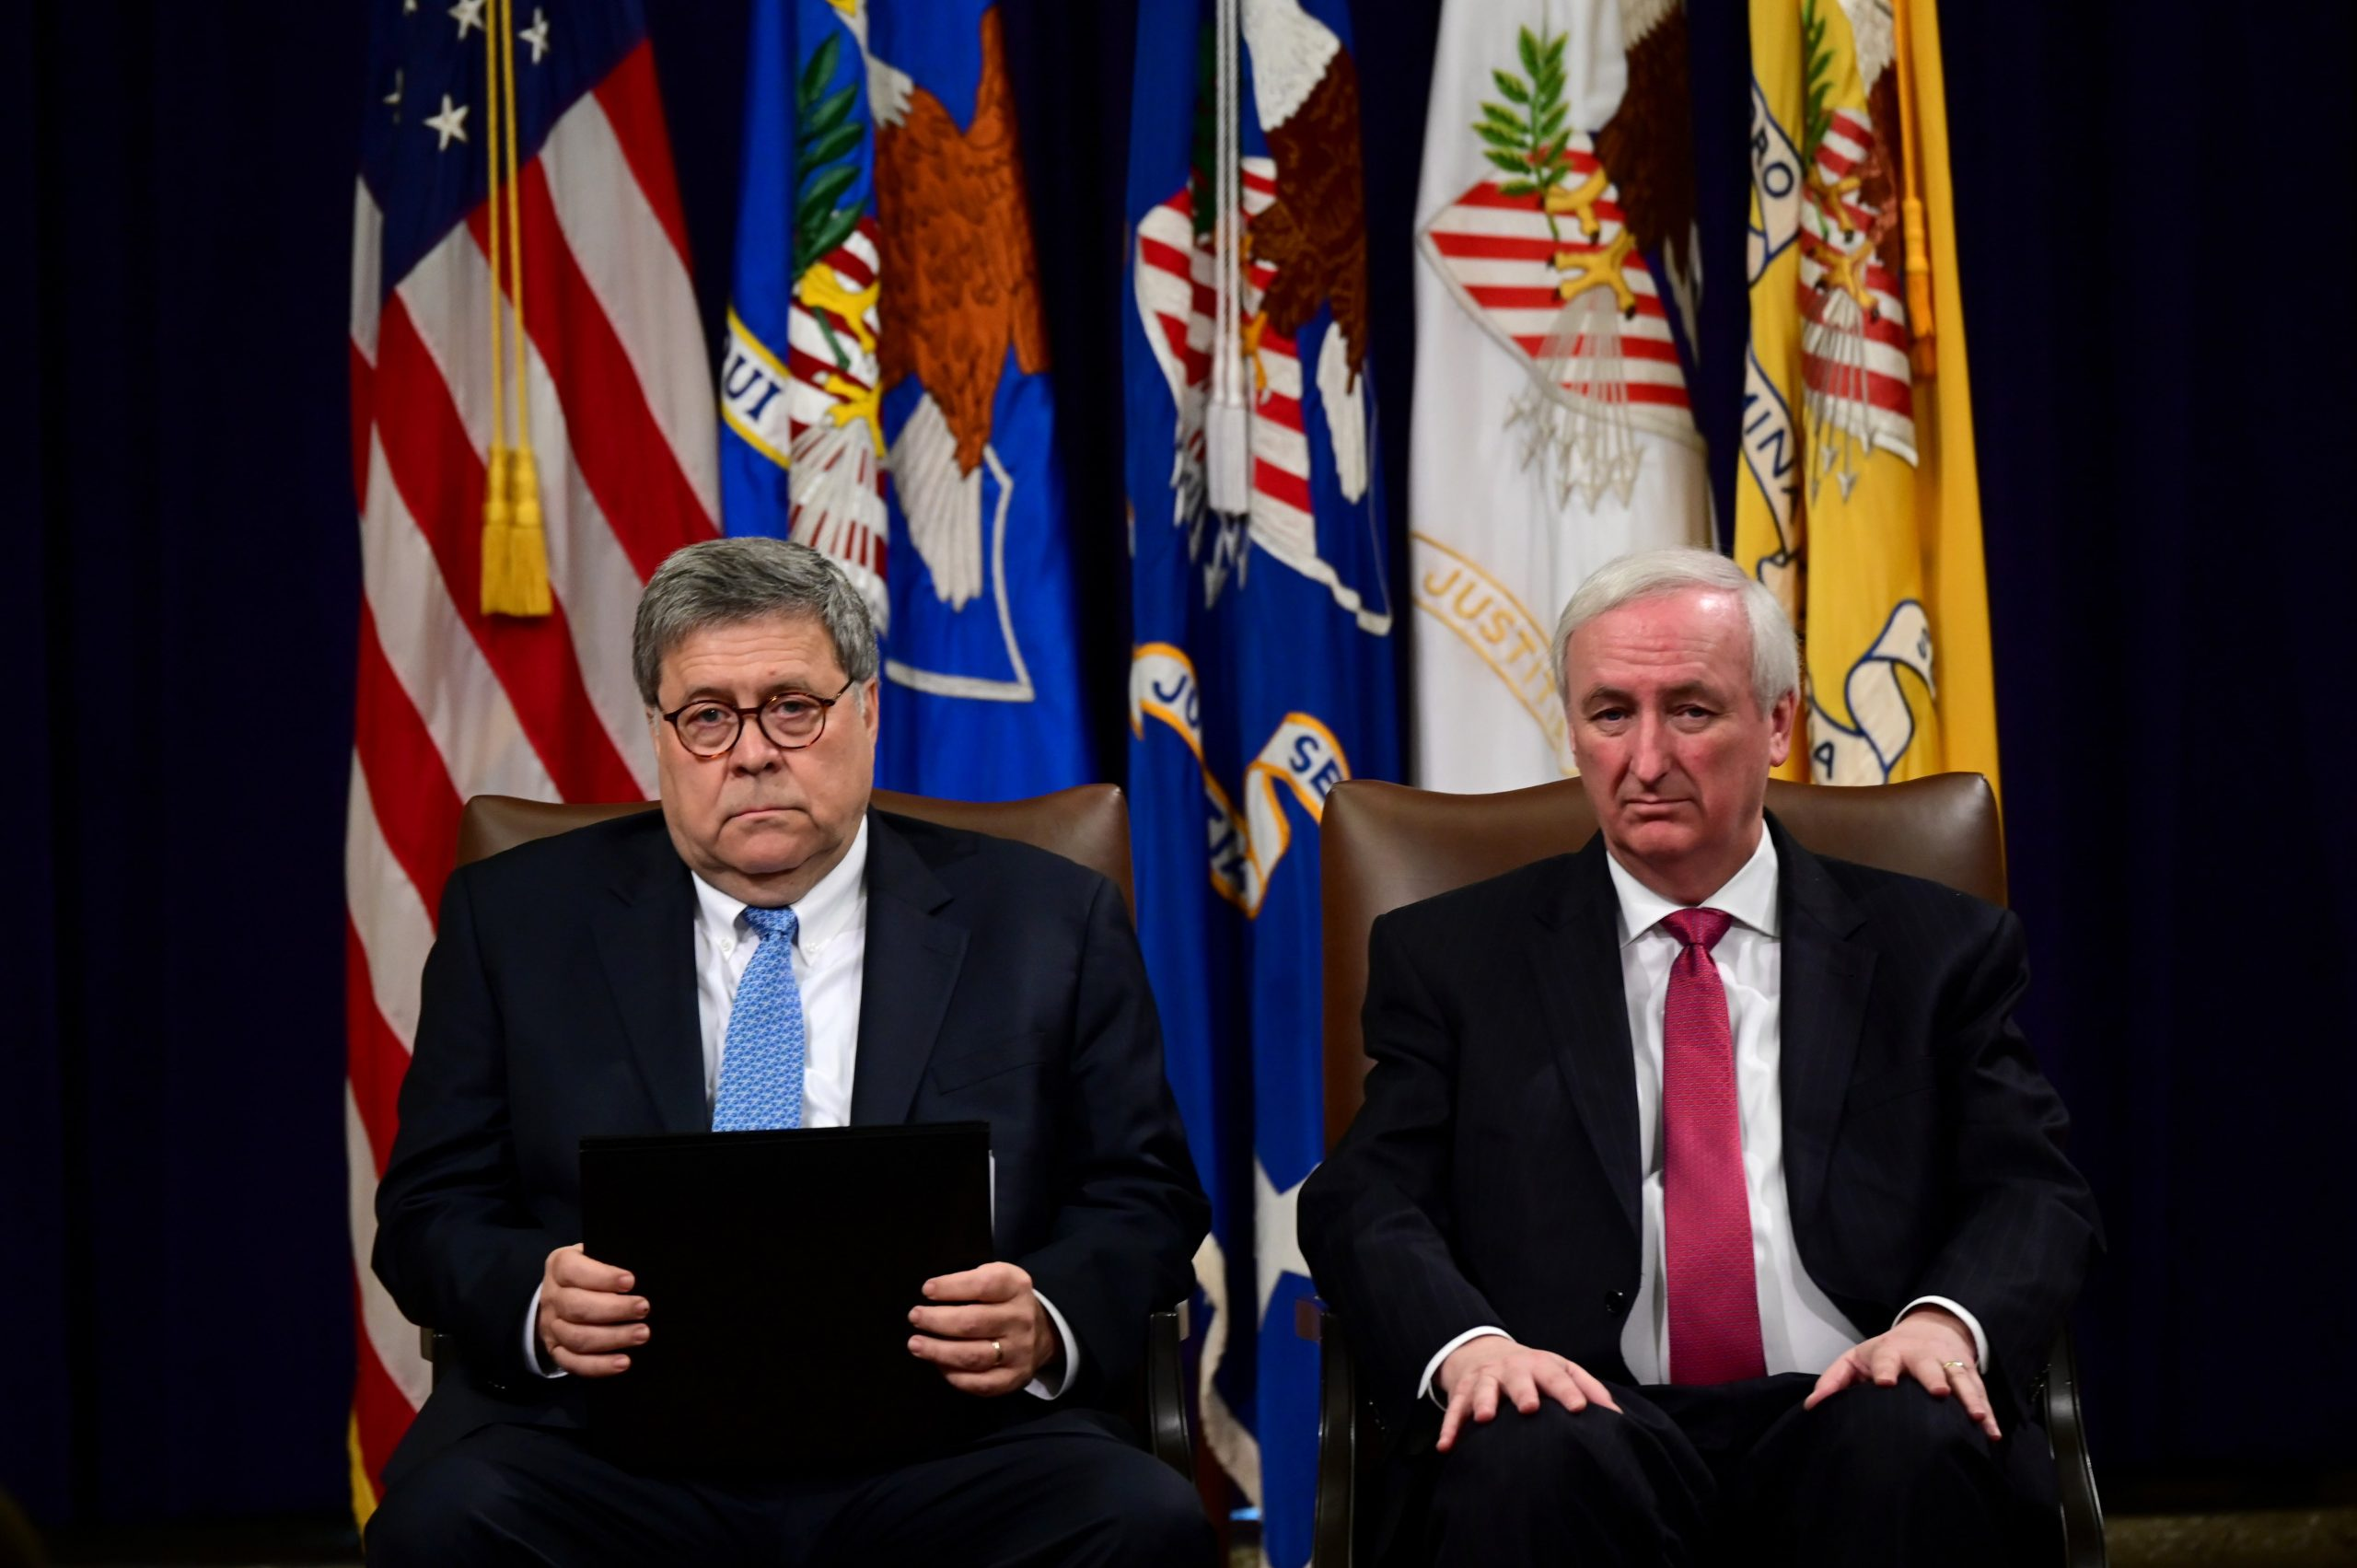 William Barr and Jeffrey Rosen